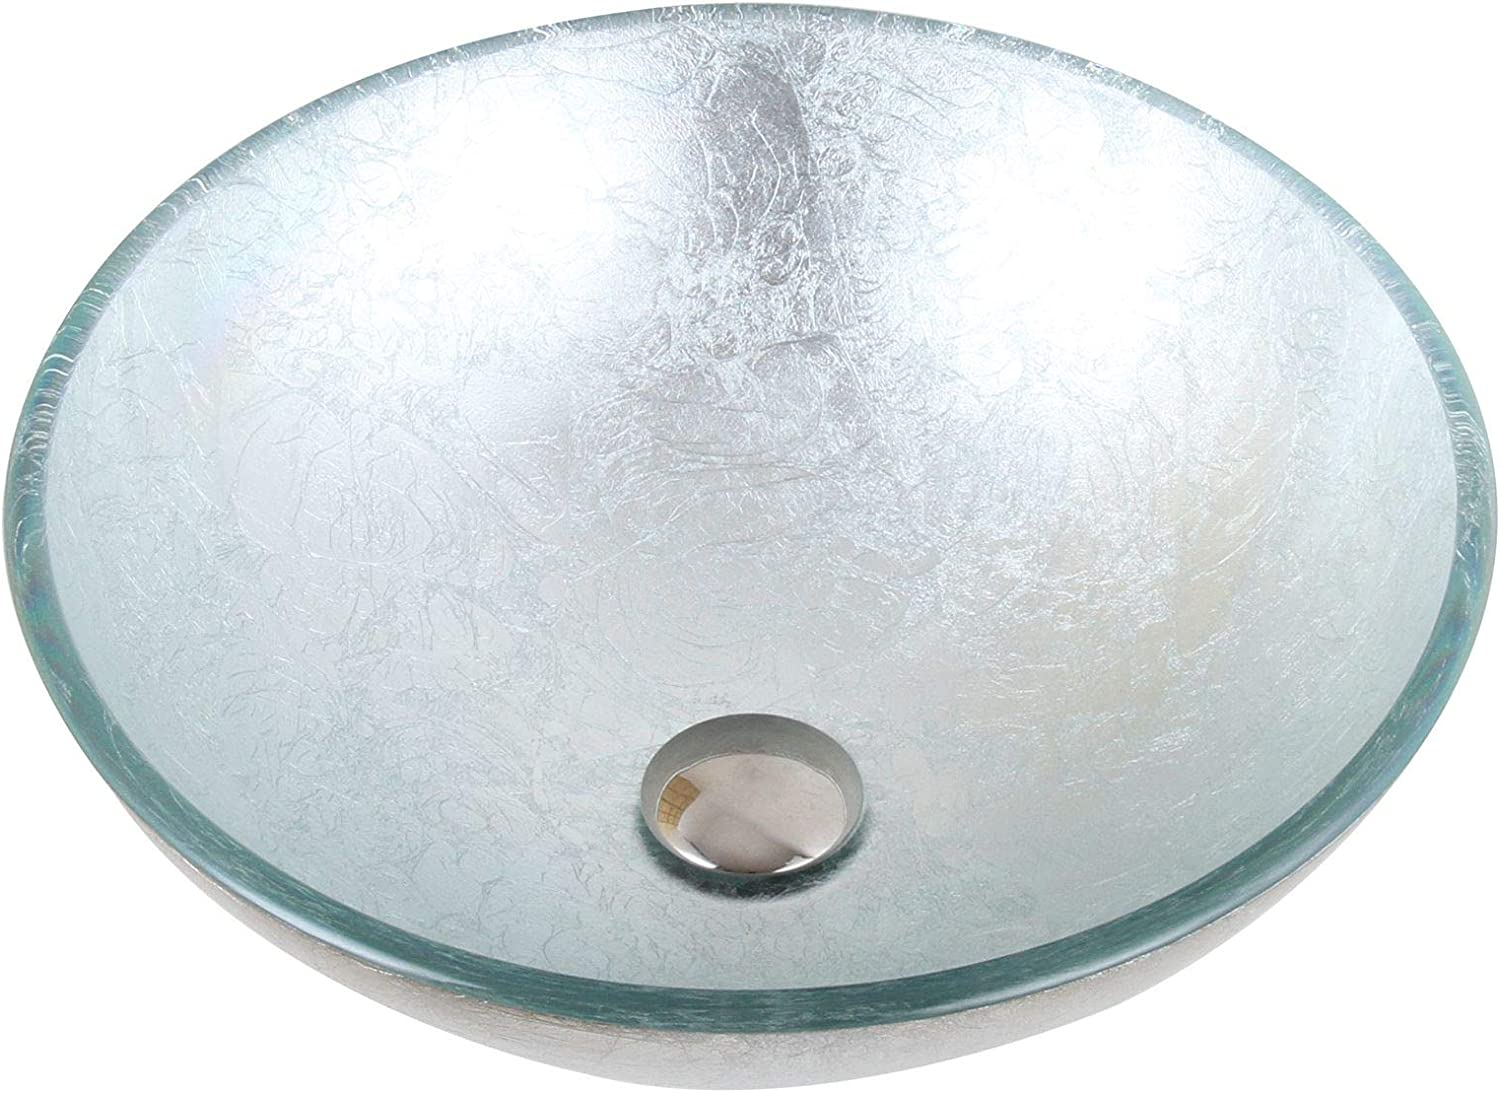 Hand Painted Foil Round Bowl Vessel Bathroom Sink Drain Finish Chrome